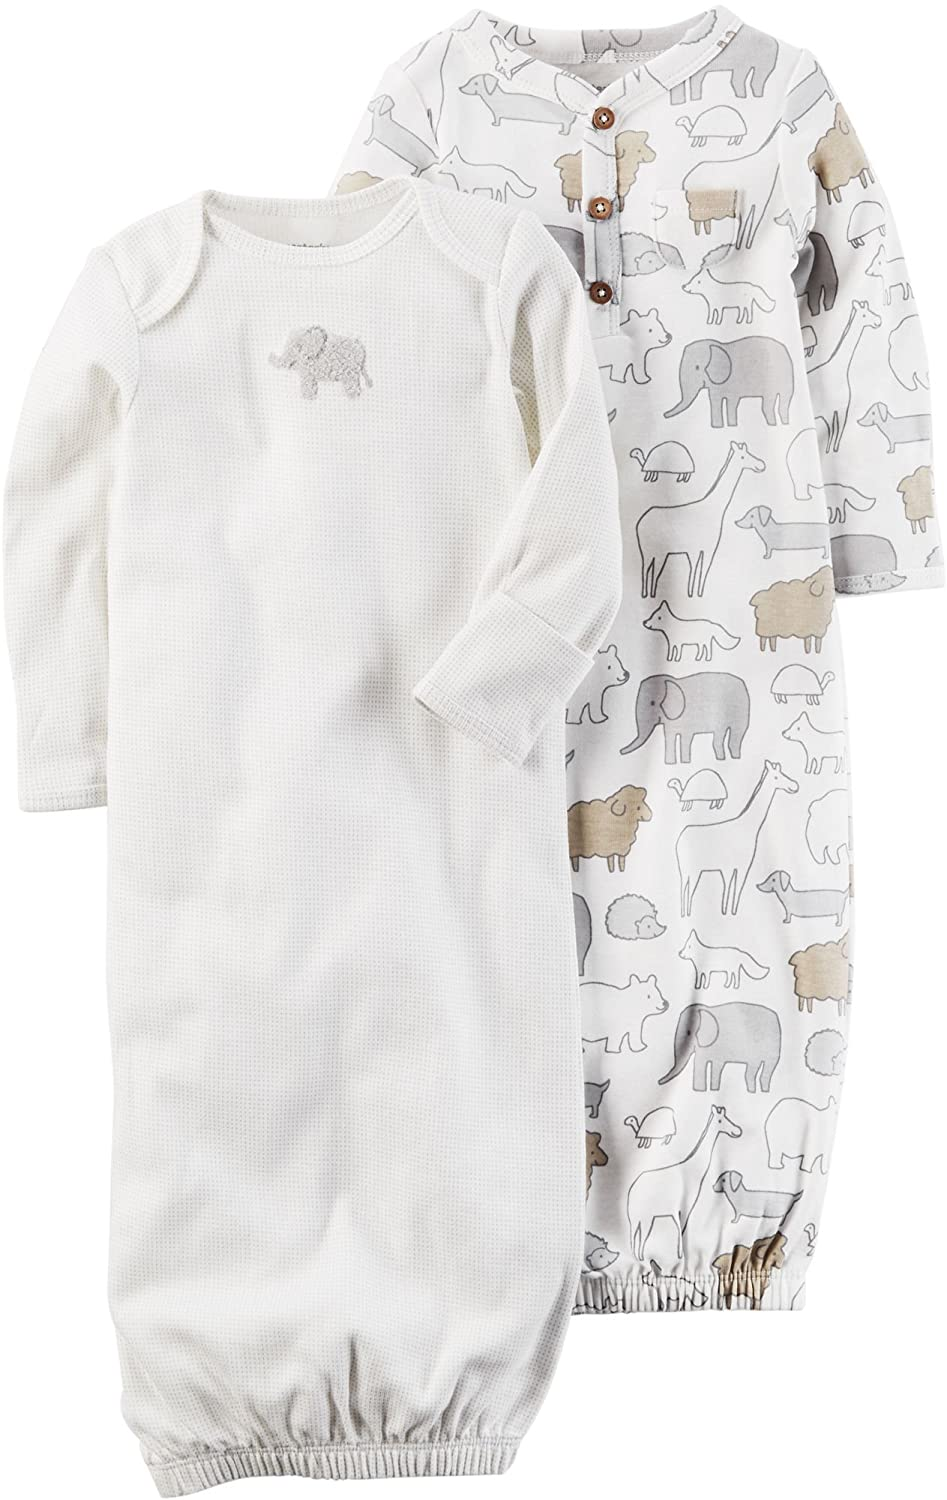 Carter's Unisex Baby 2-Pack Gowns 3 months Carter' s 126G707